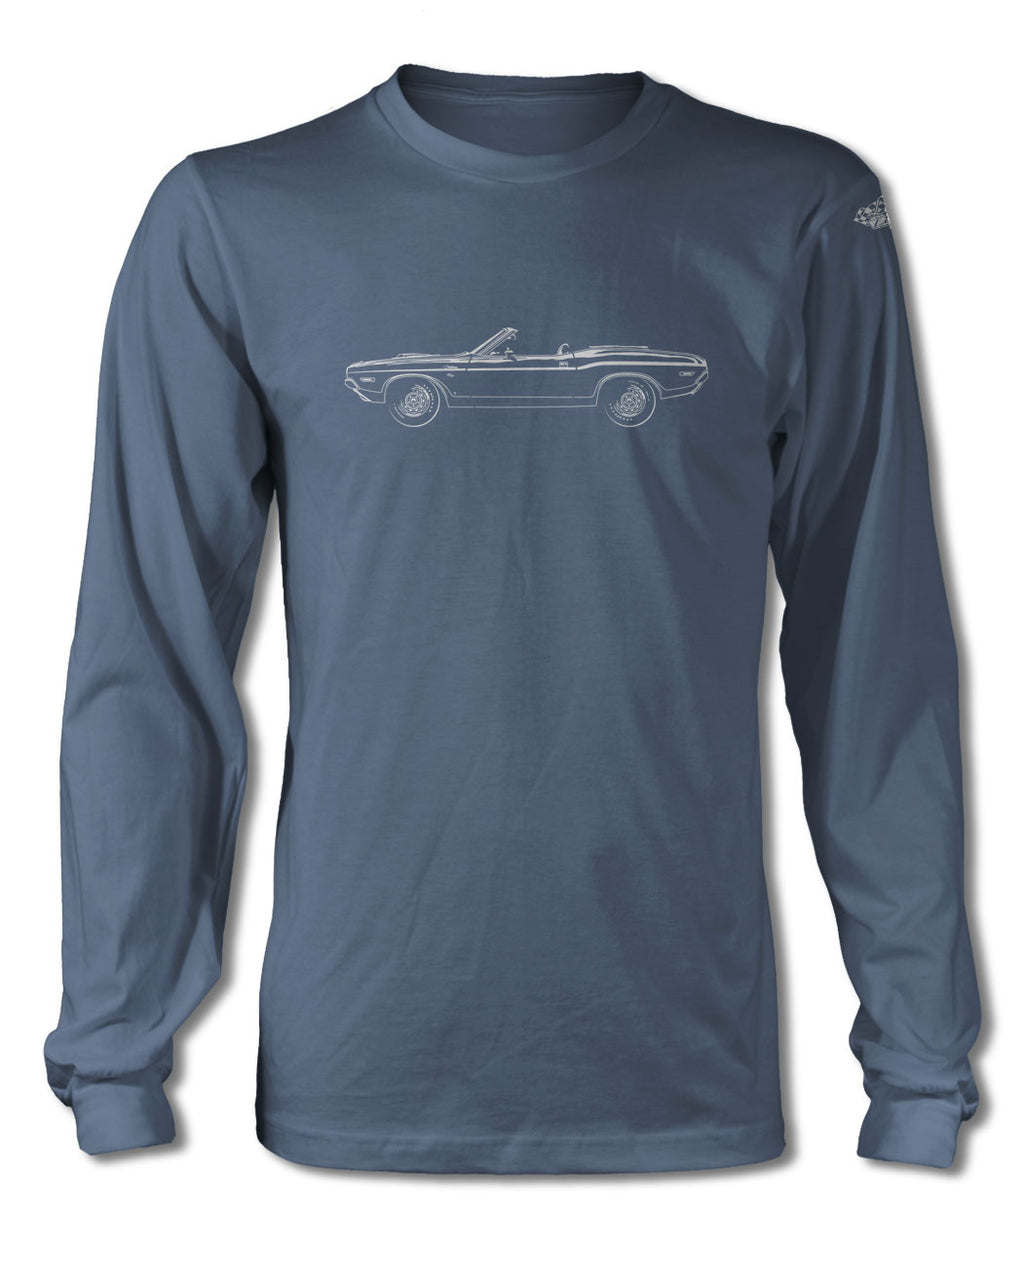 1970 Dodge Challenger RT Convertible Shaker Hood T-Shirt - Long Sleeves - Side View